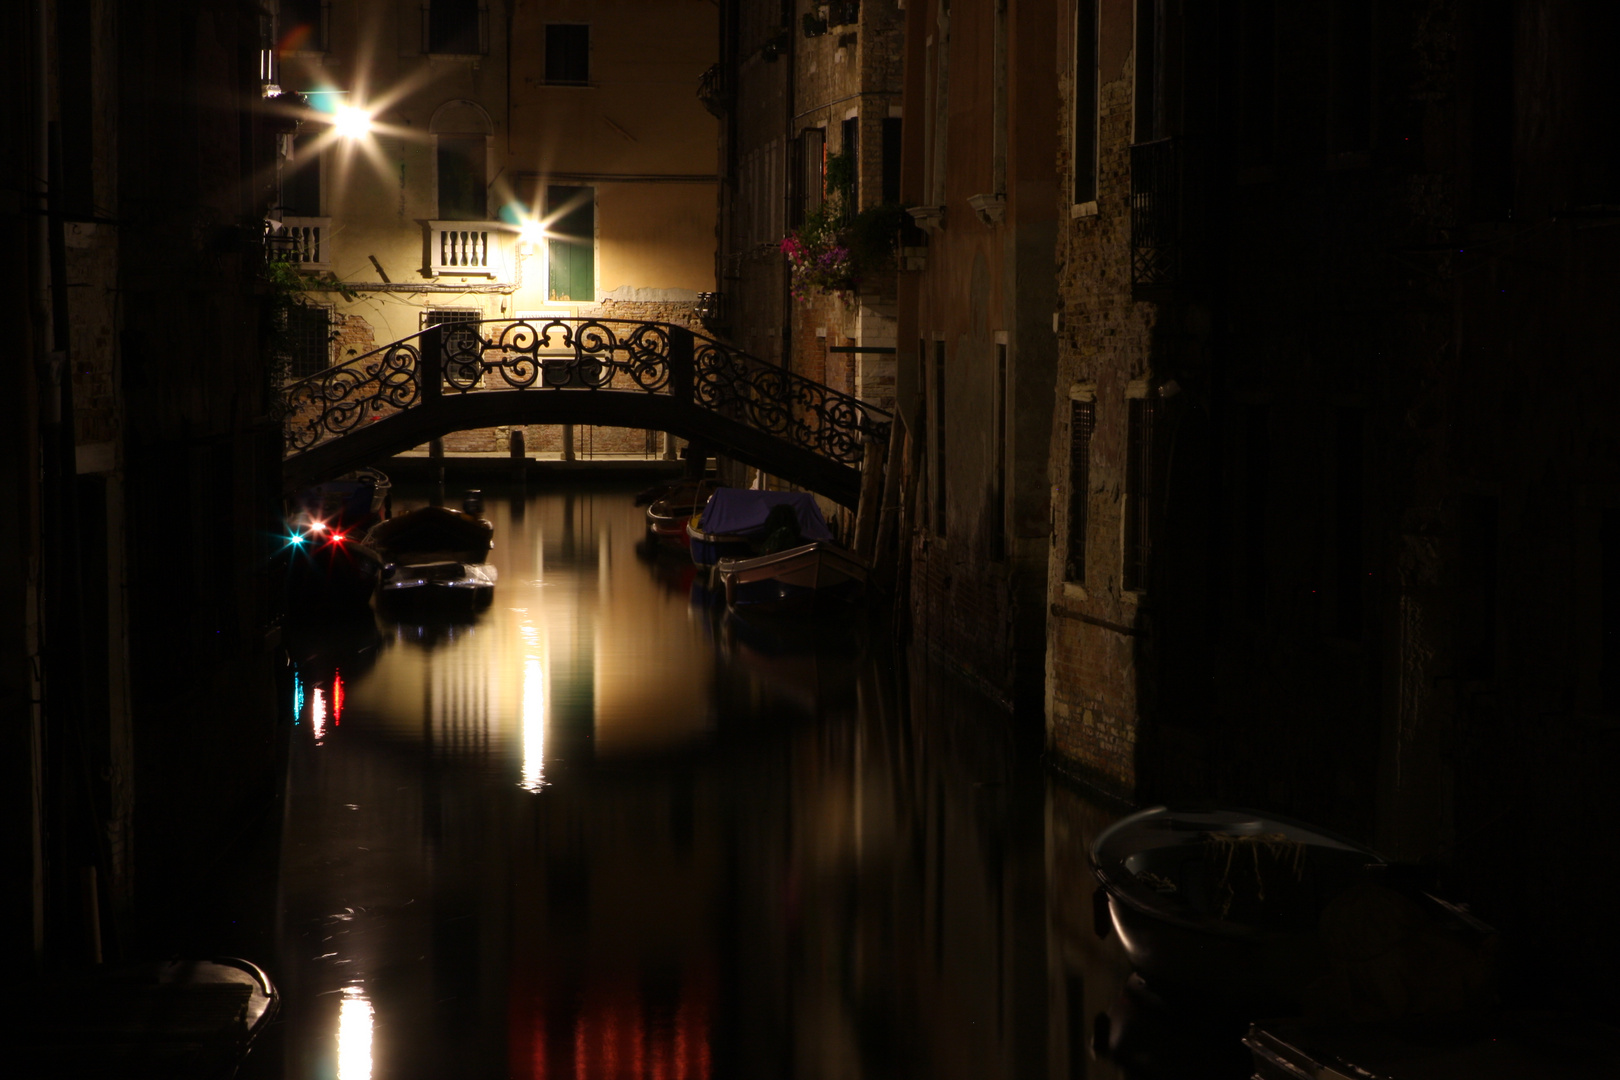 Venice canal in the night 3.